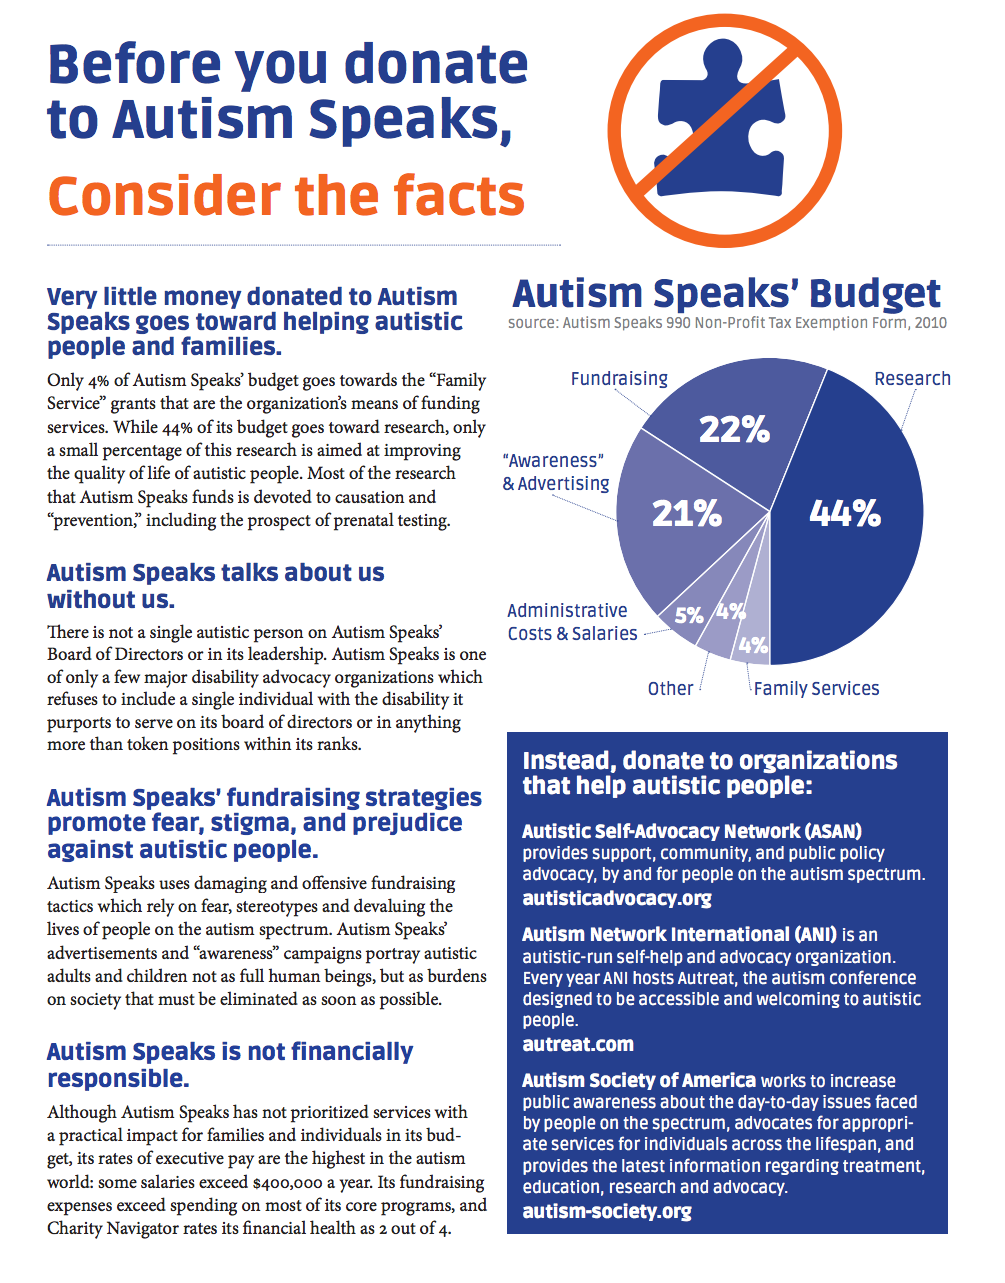 Lifetime Costs Of Autism Can Exceed 2 >> An Autistic Speaks About Autism Speaks Imagine If You Will That